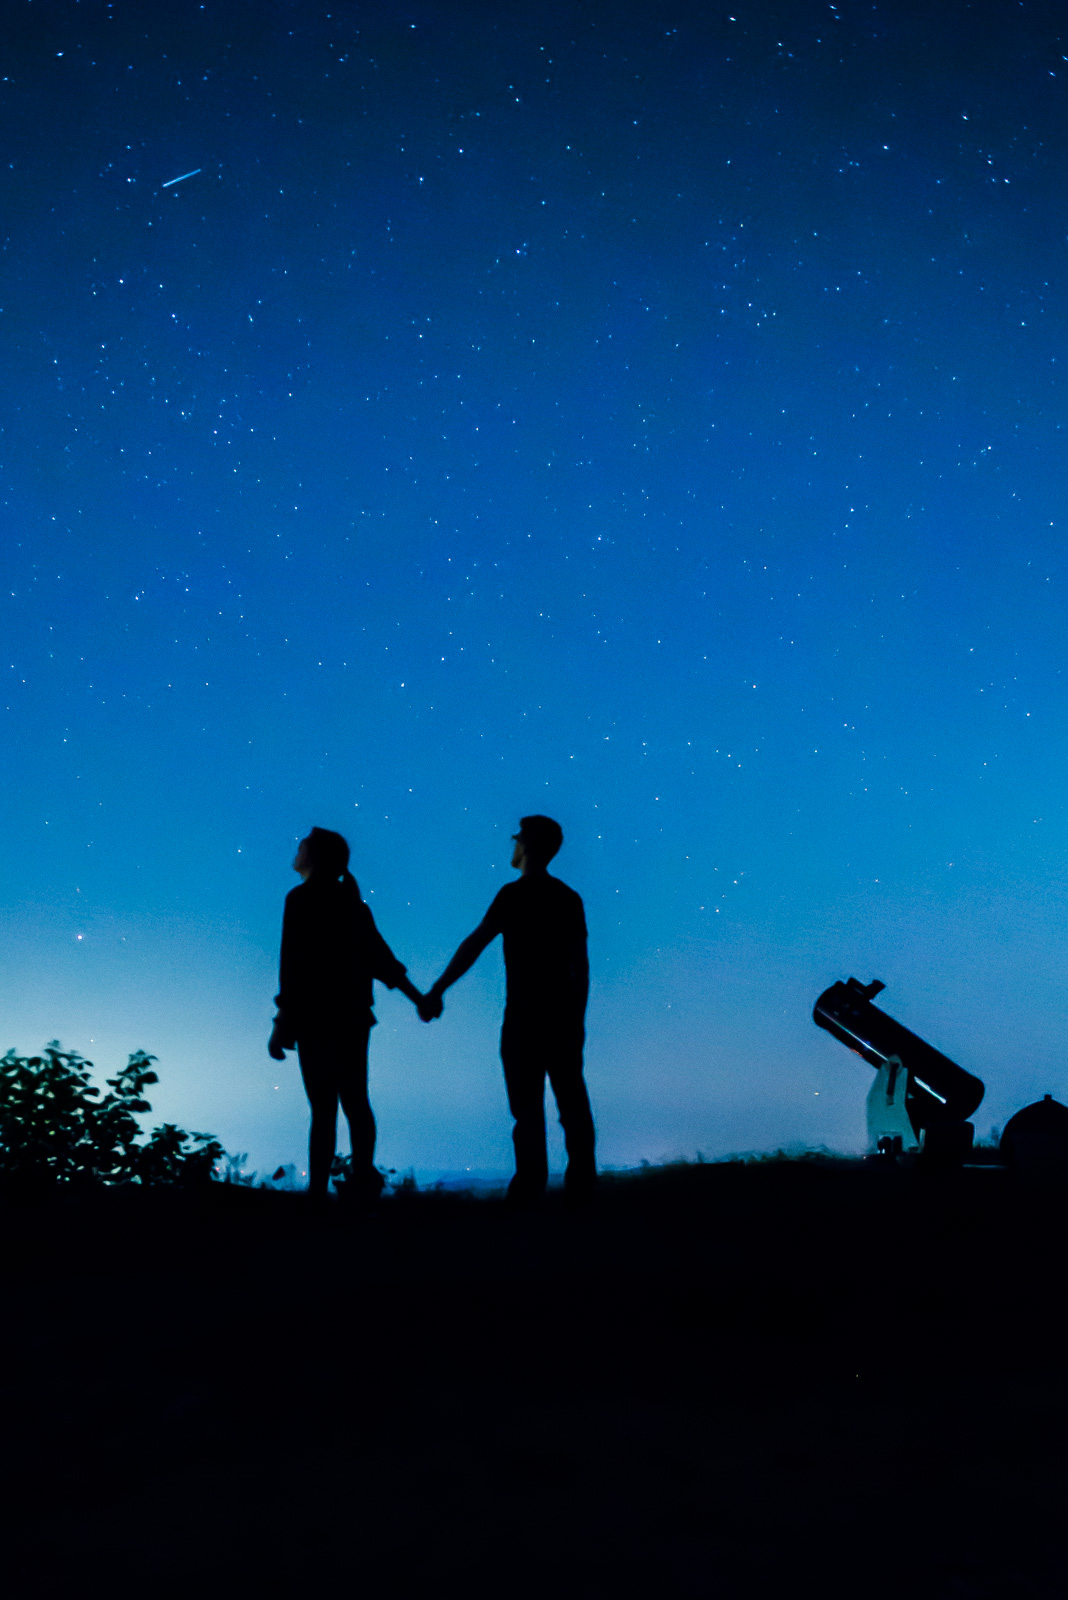 silhouette of people holding hands at night with telescope